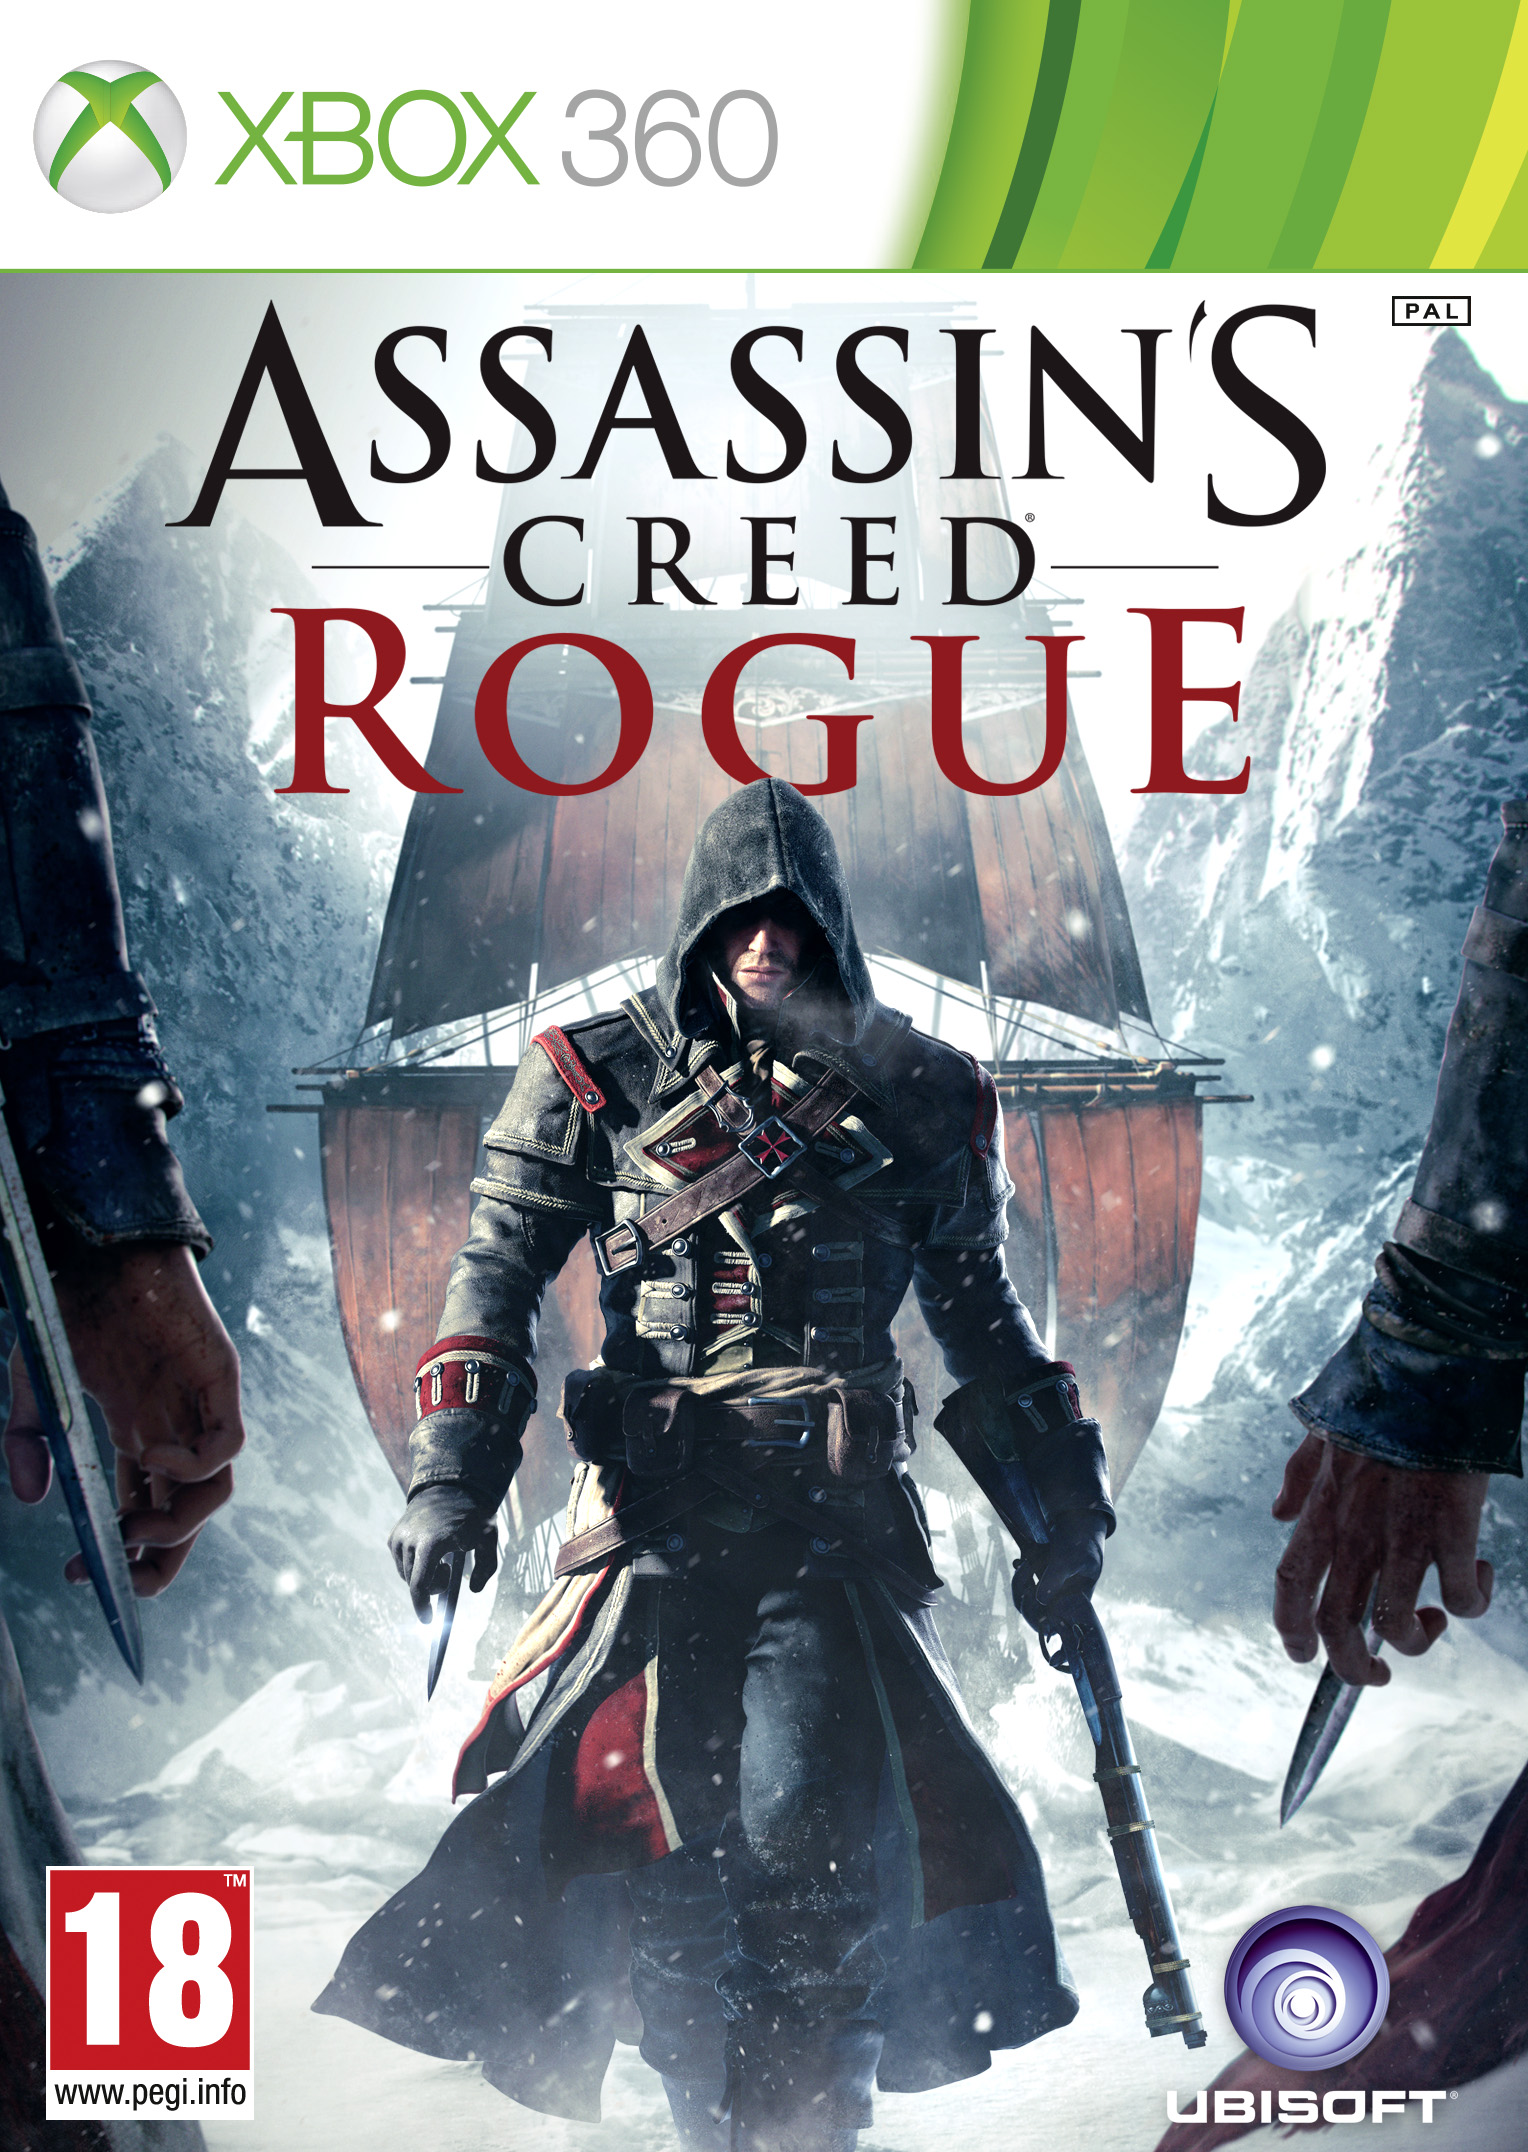 Assassin's Creed Rogue puts you behind the ship's wheel ...